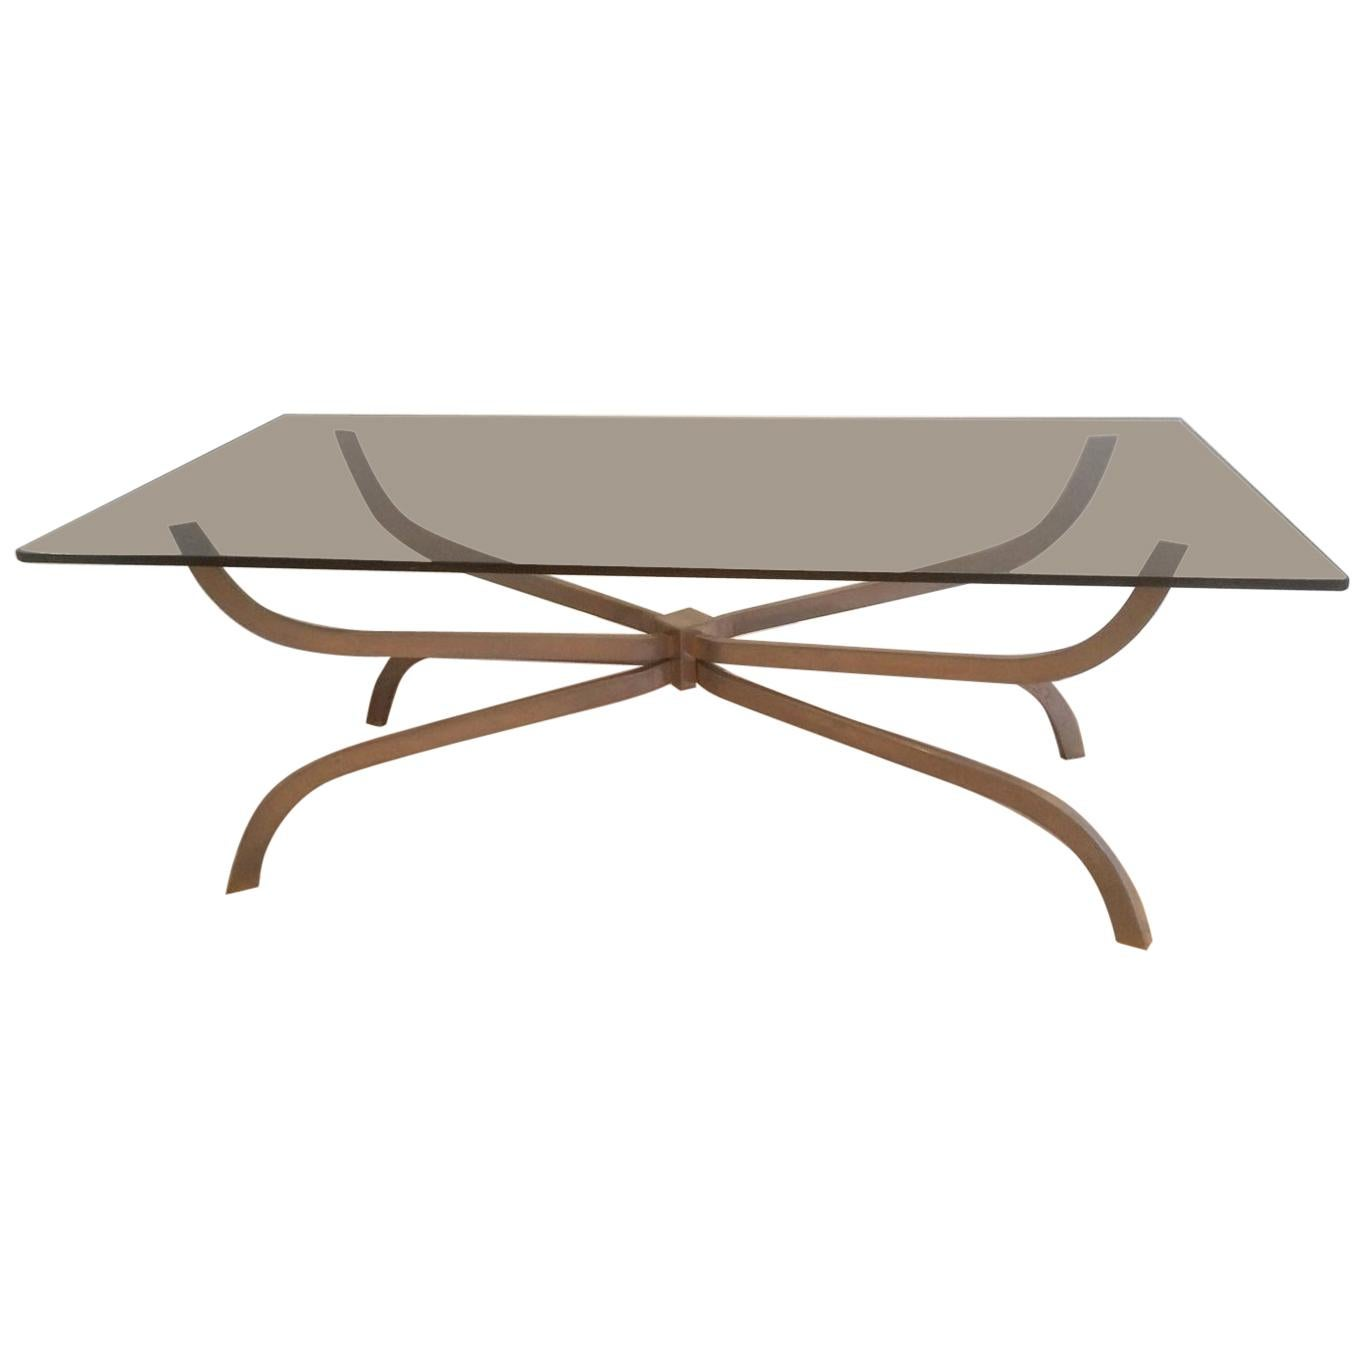 Maison Charles, Interesting Brushed Steel Coffee Table with Smoked Glass Top